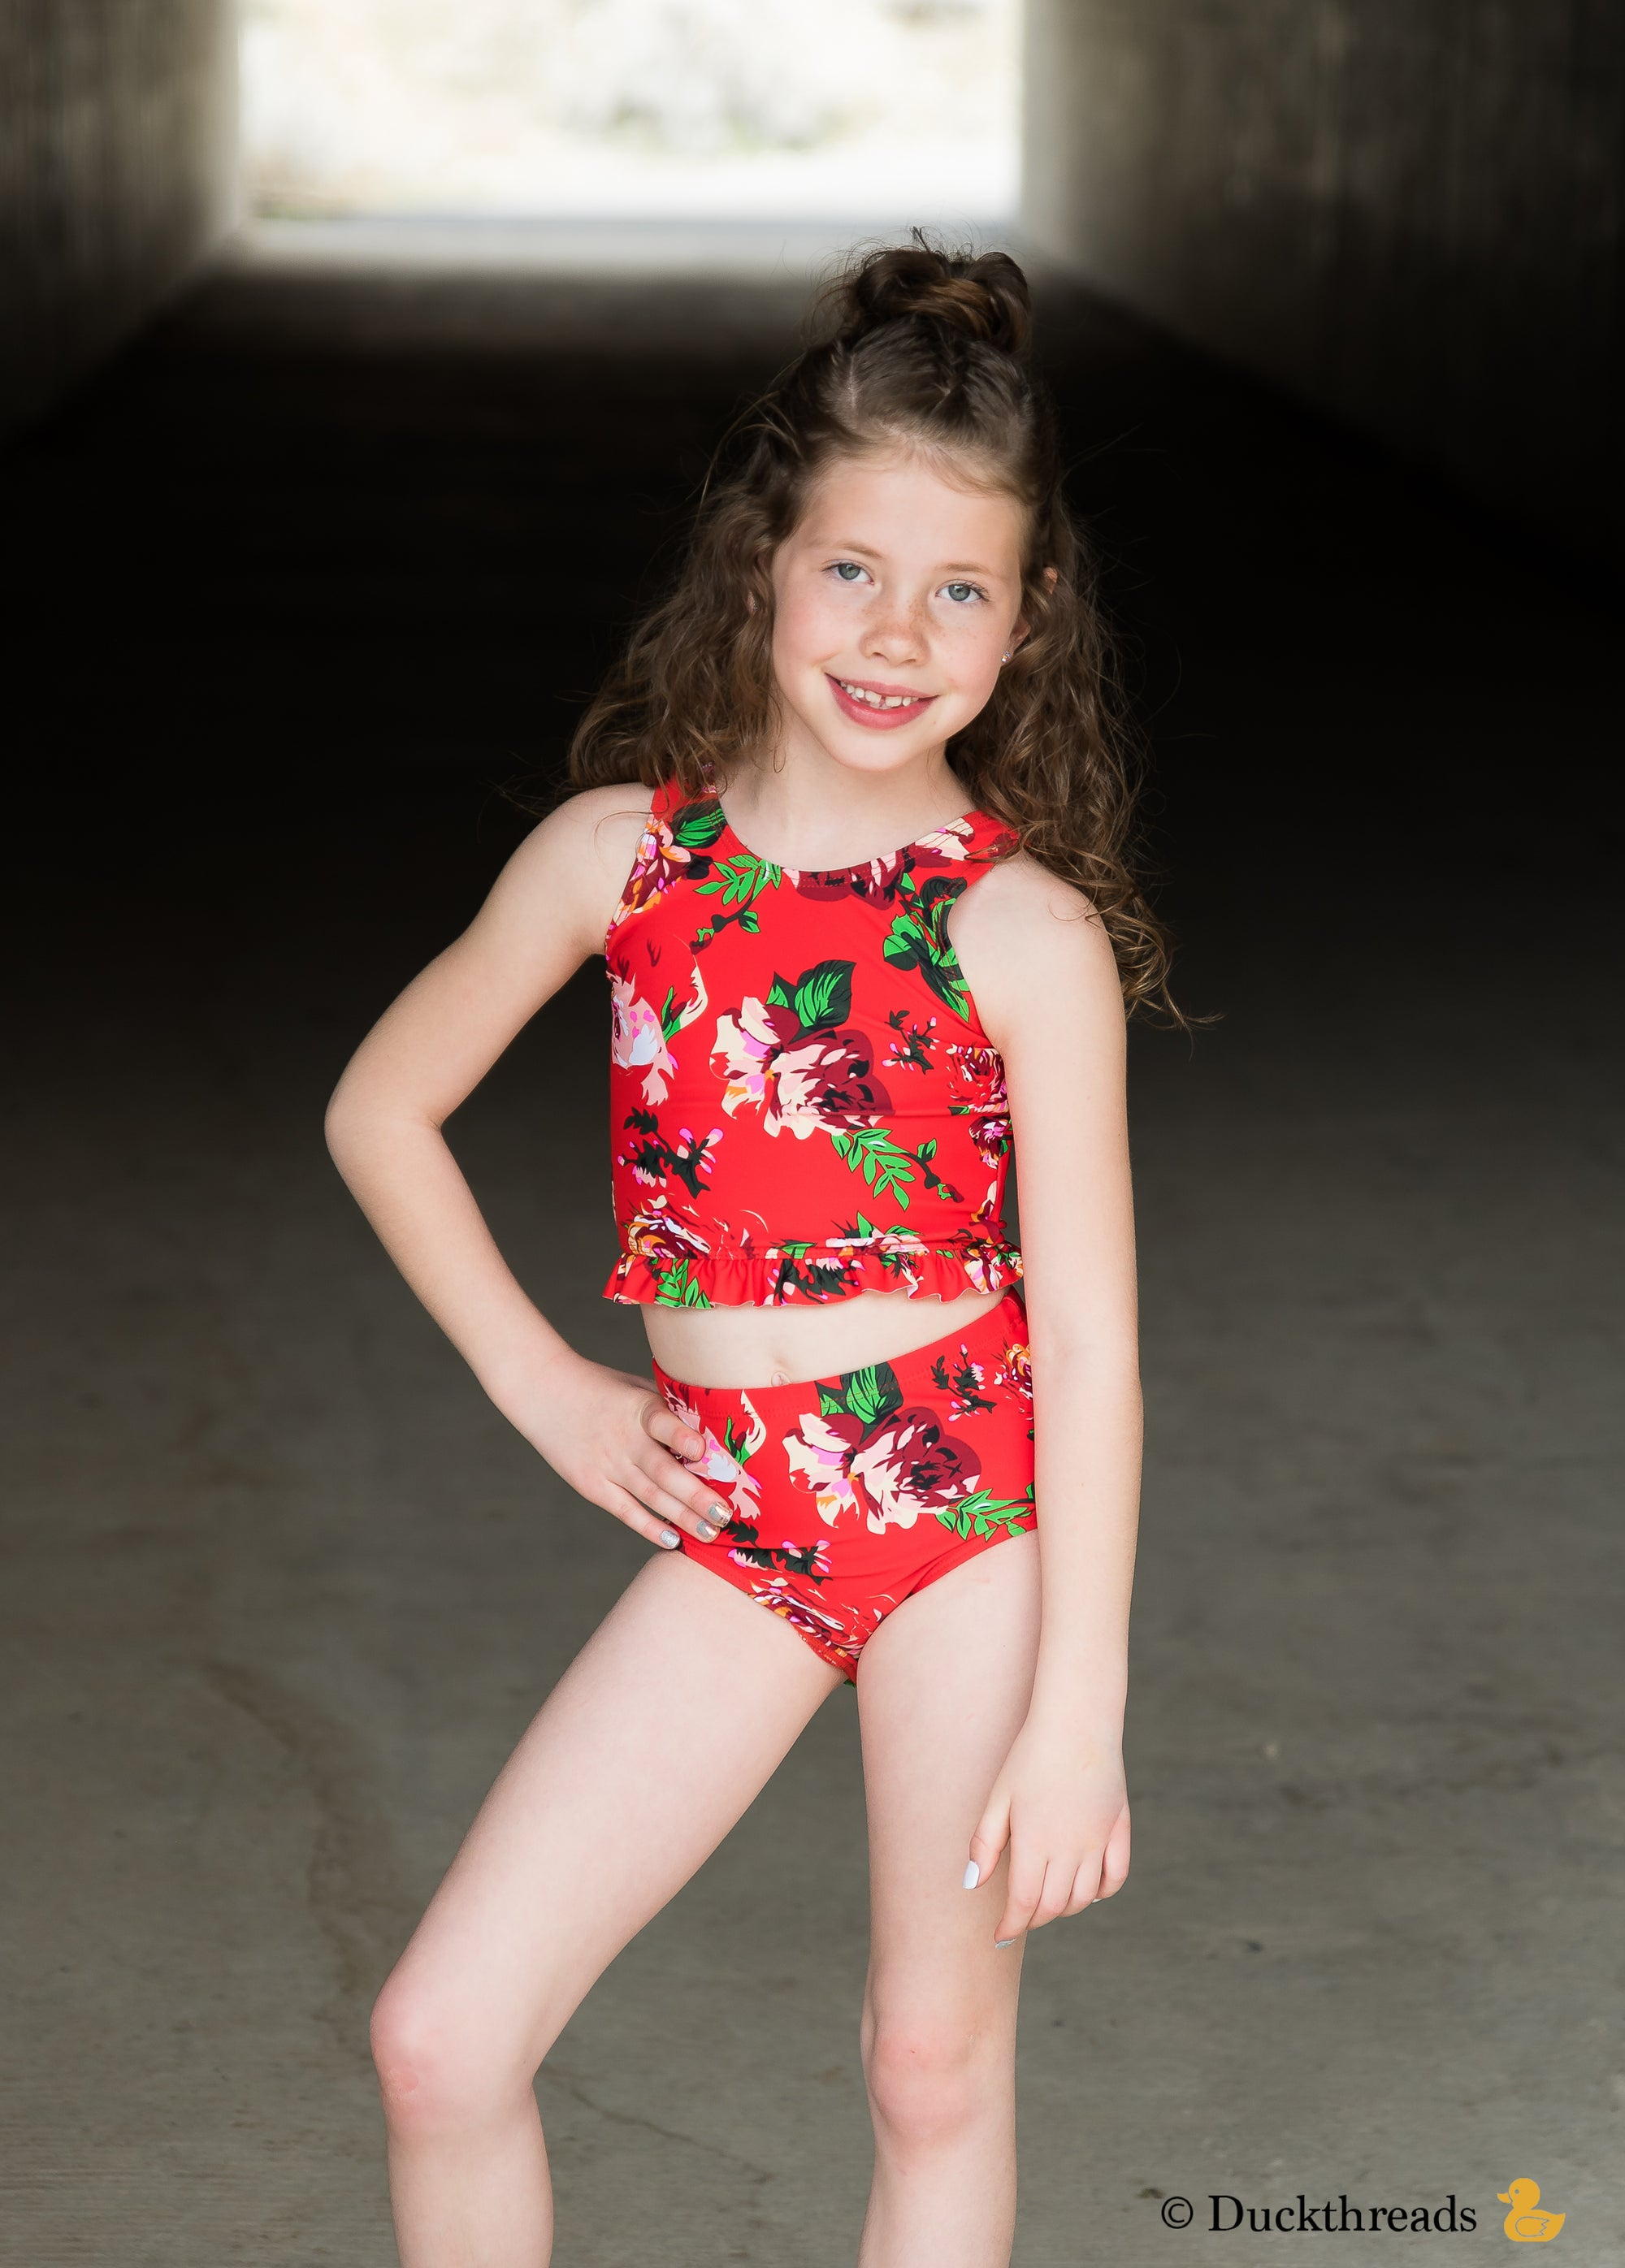 Red Floral Little Ruffle Swim Top by Janela Bay - Duckthreads